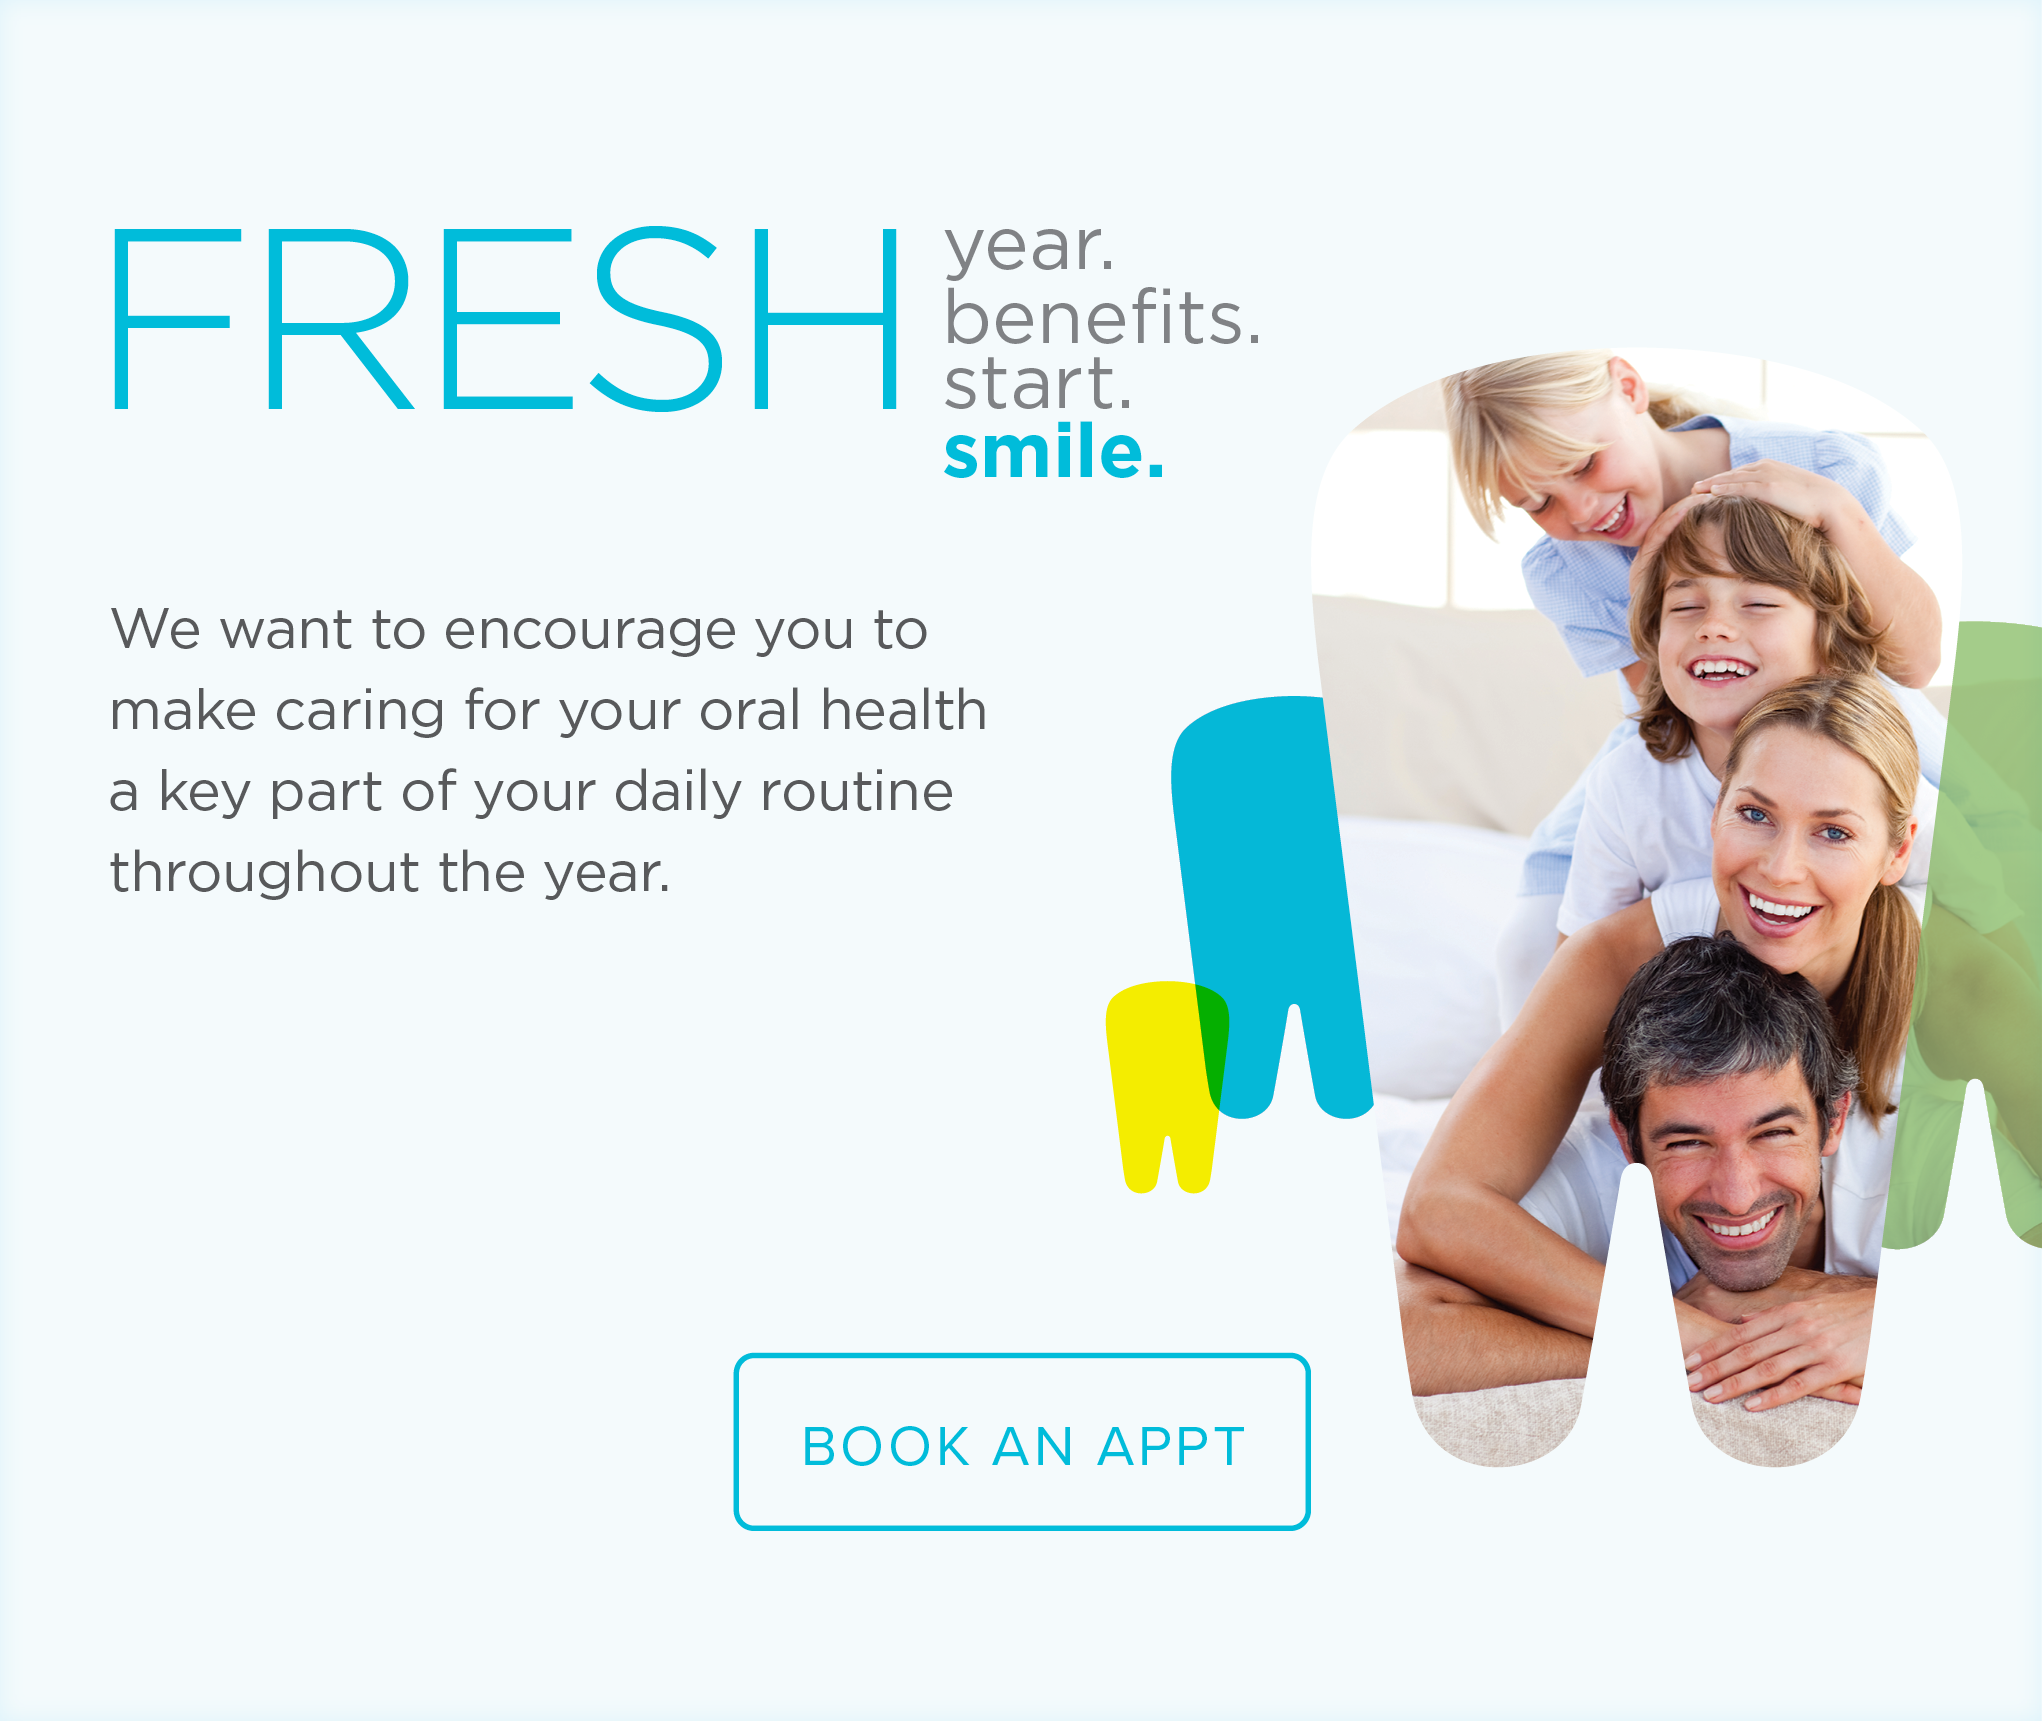 7th and Bell Dental Group - Make the Most of Your Benefits